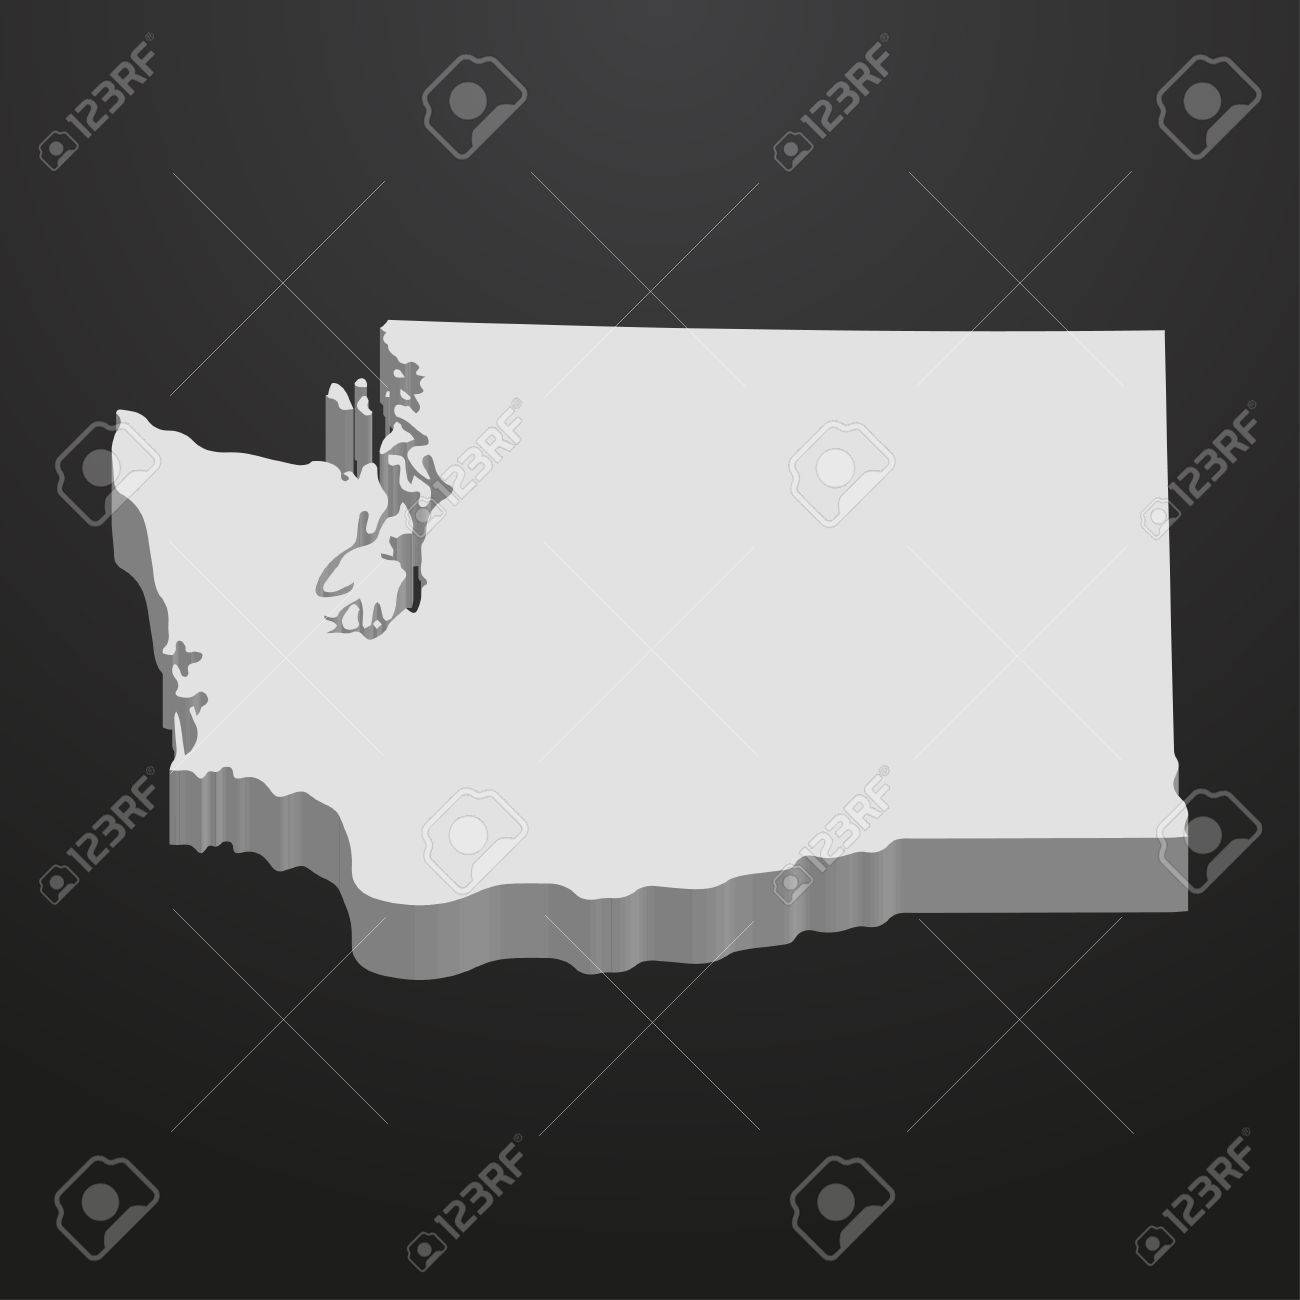 Washington State Map In Gray On A Black Background 3d Royalty Free     Vector   Washington State map in gray on a black background 3d